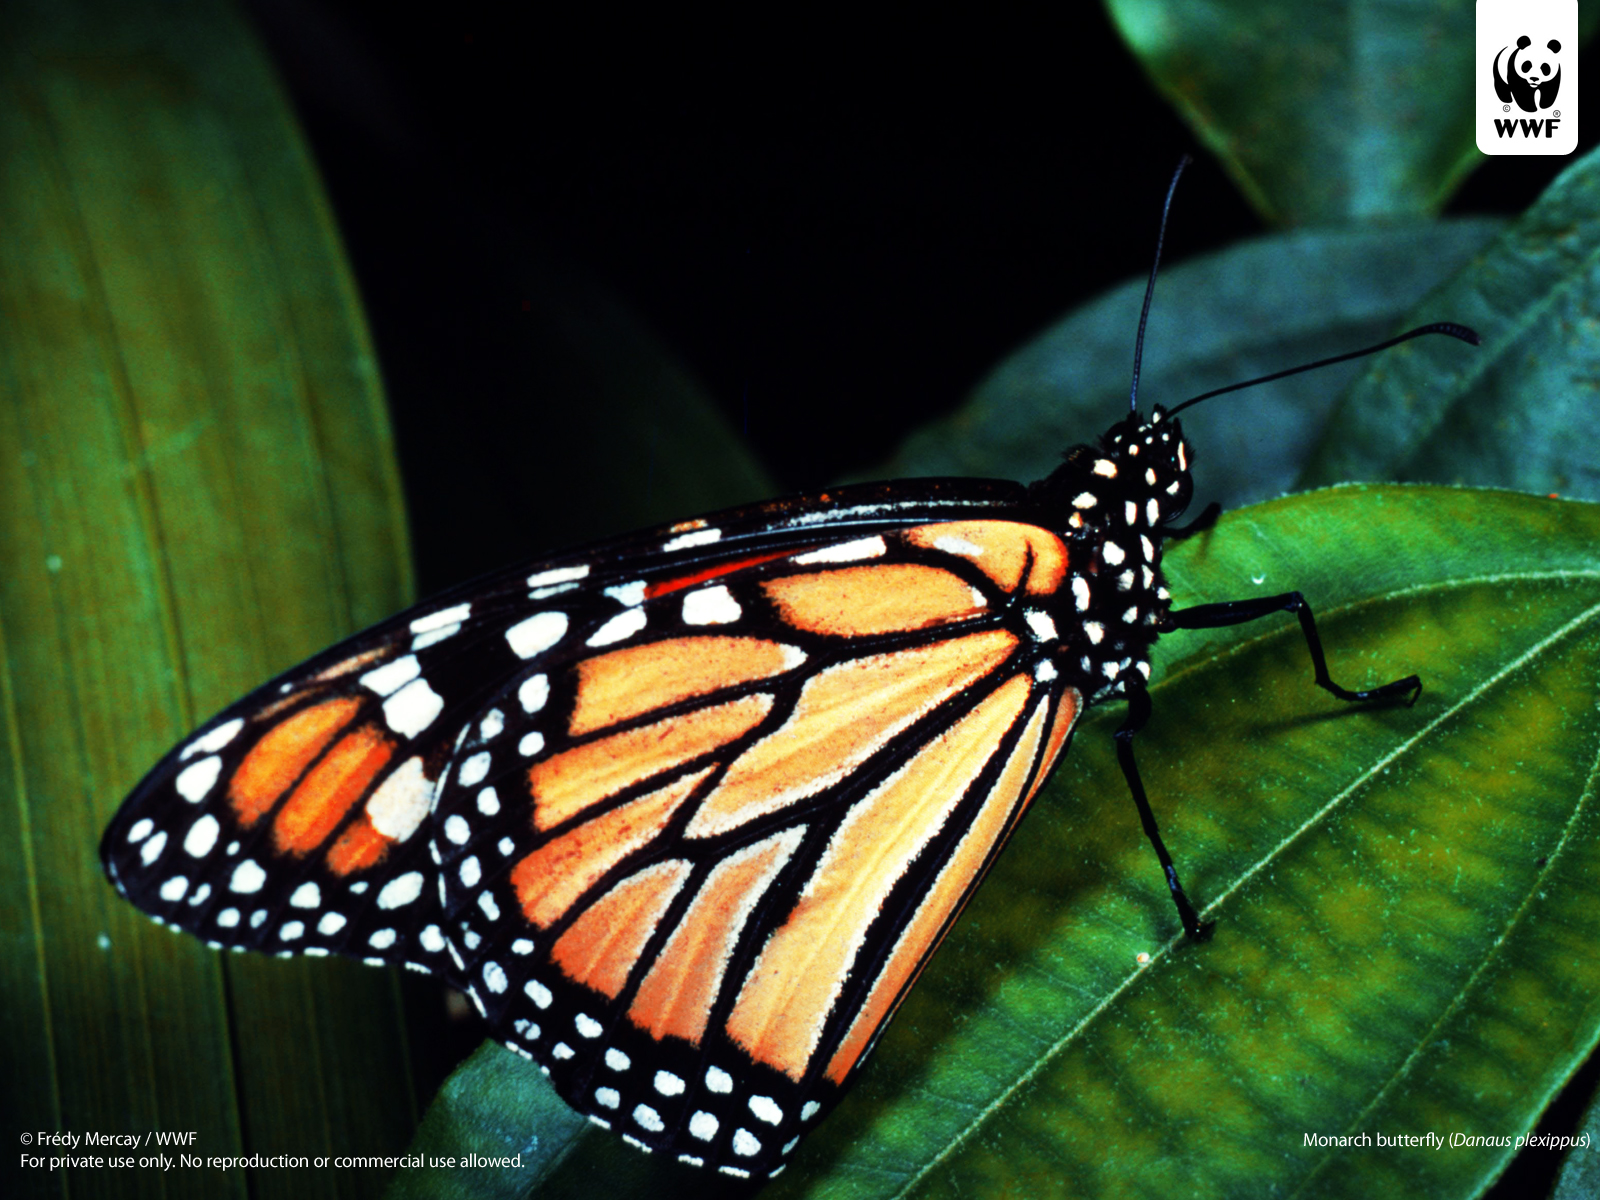 Free 3D Wallpapers Download: Monarch butterfly wallpaper - photo#28